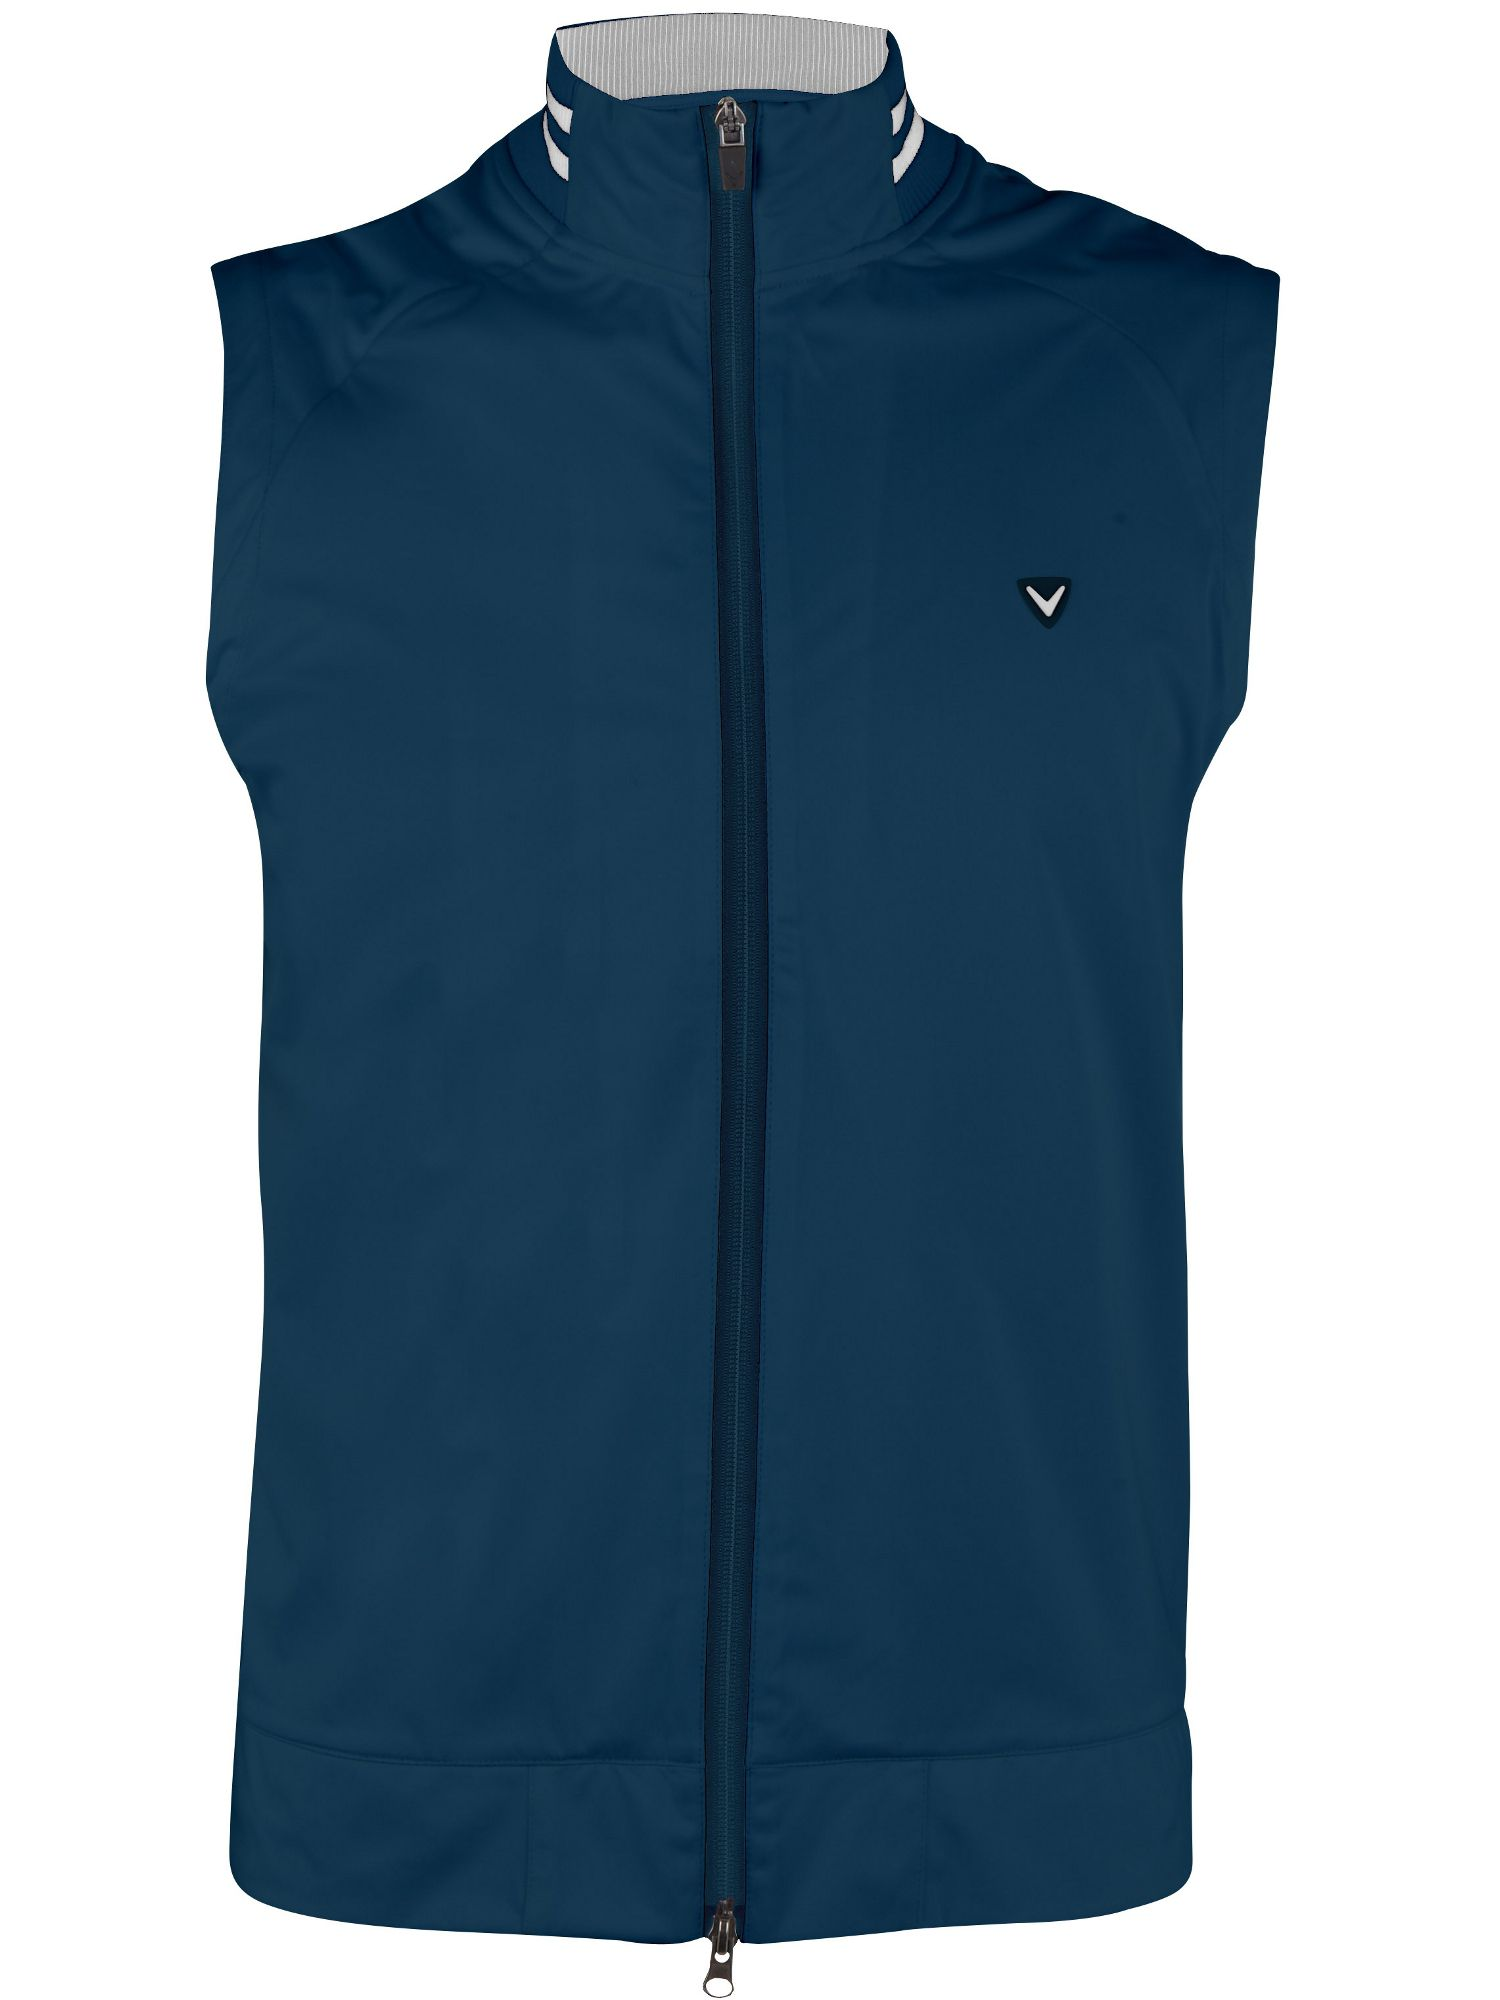 Full zipped windstopper vest